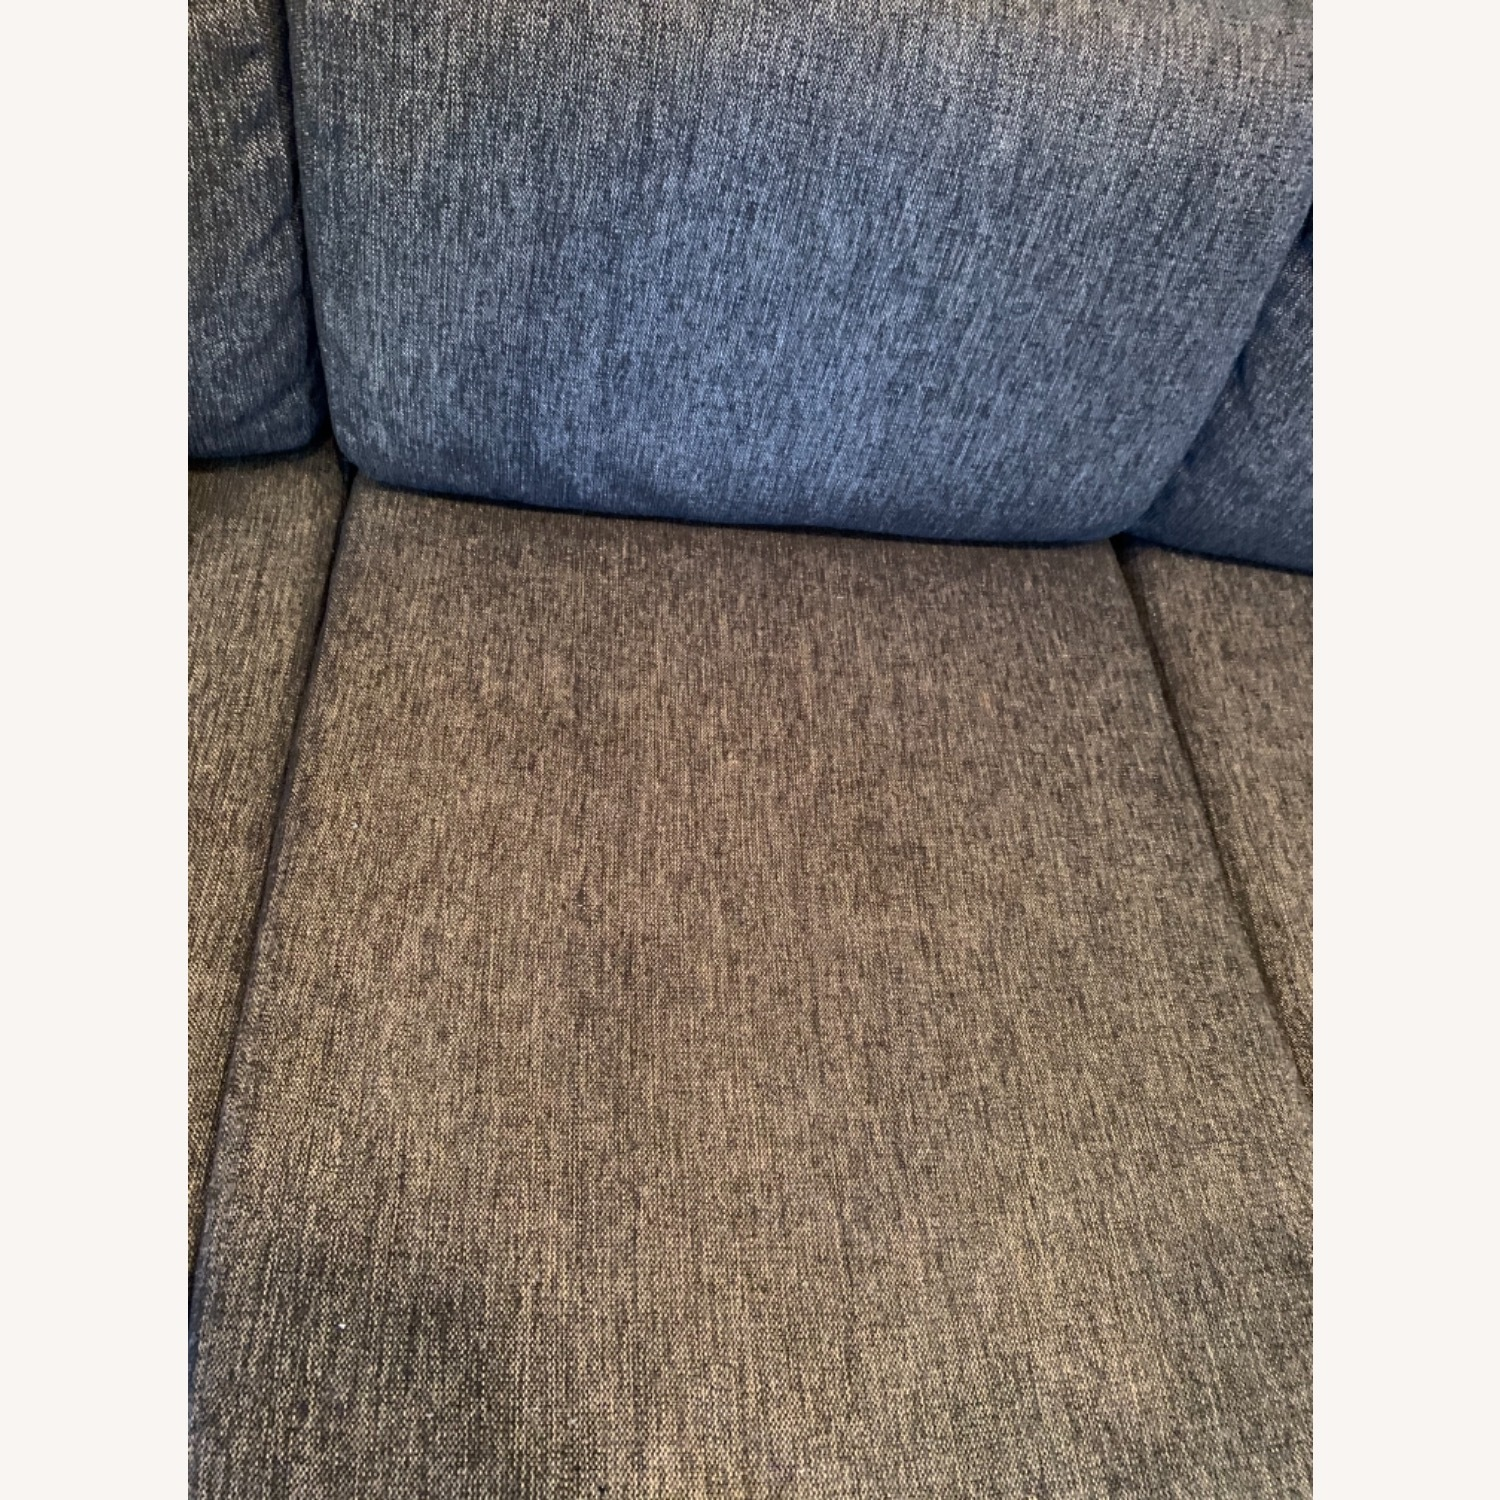 Gus Modern Gray Couch - image-9